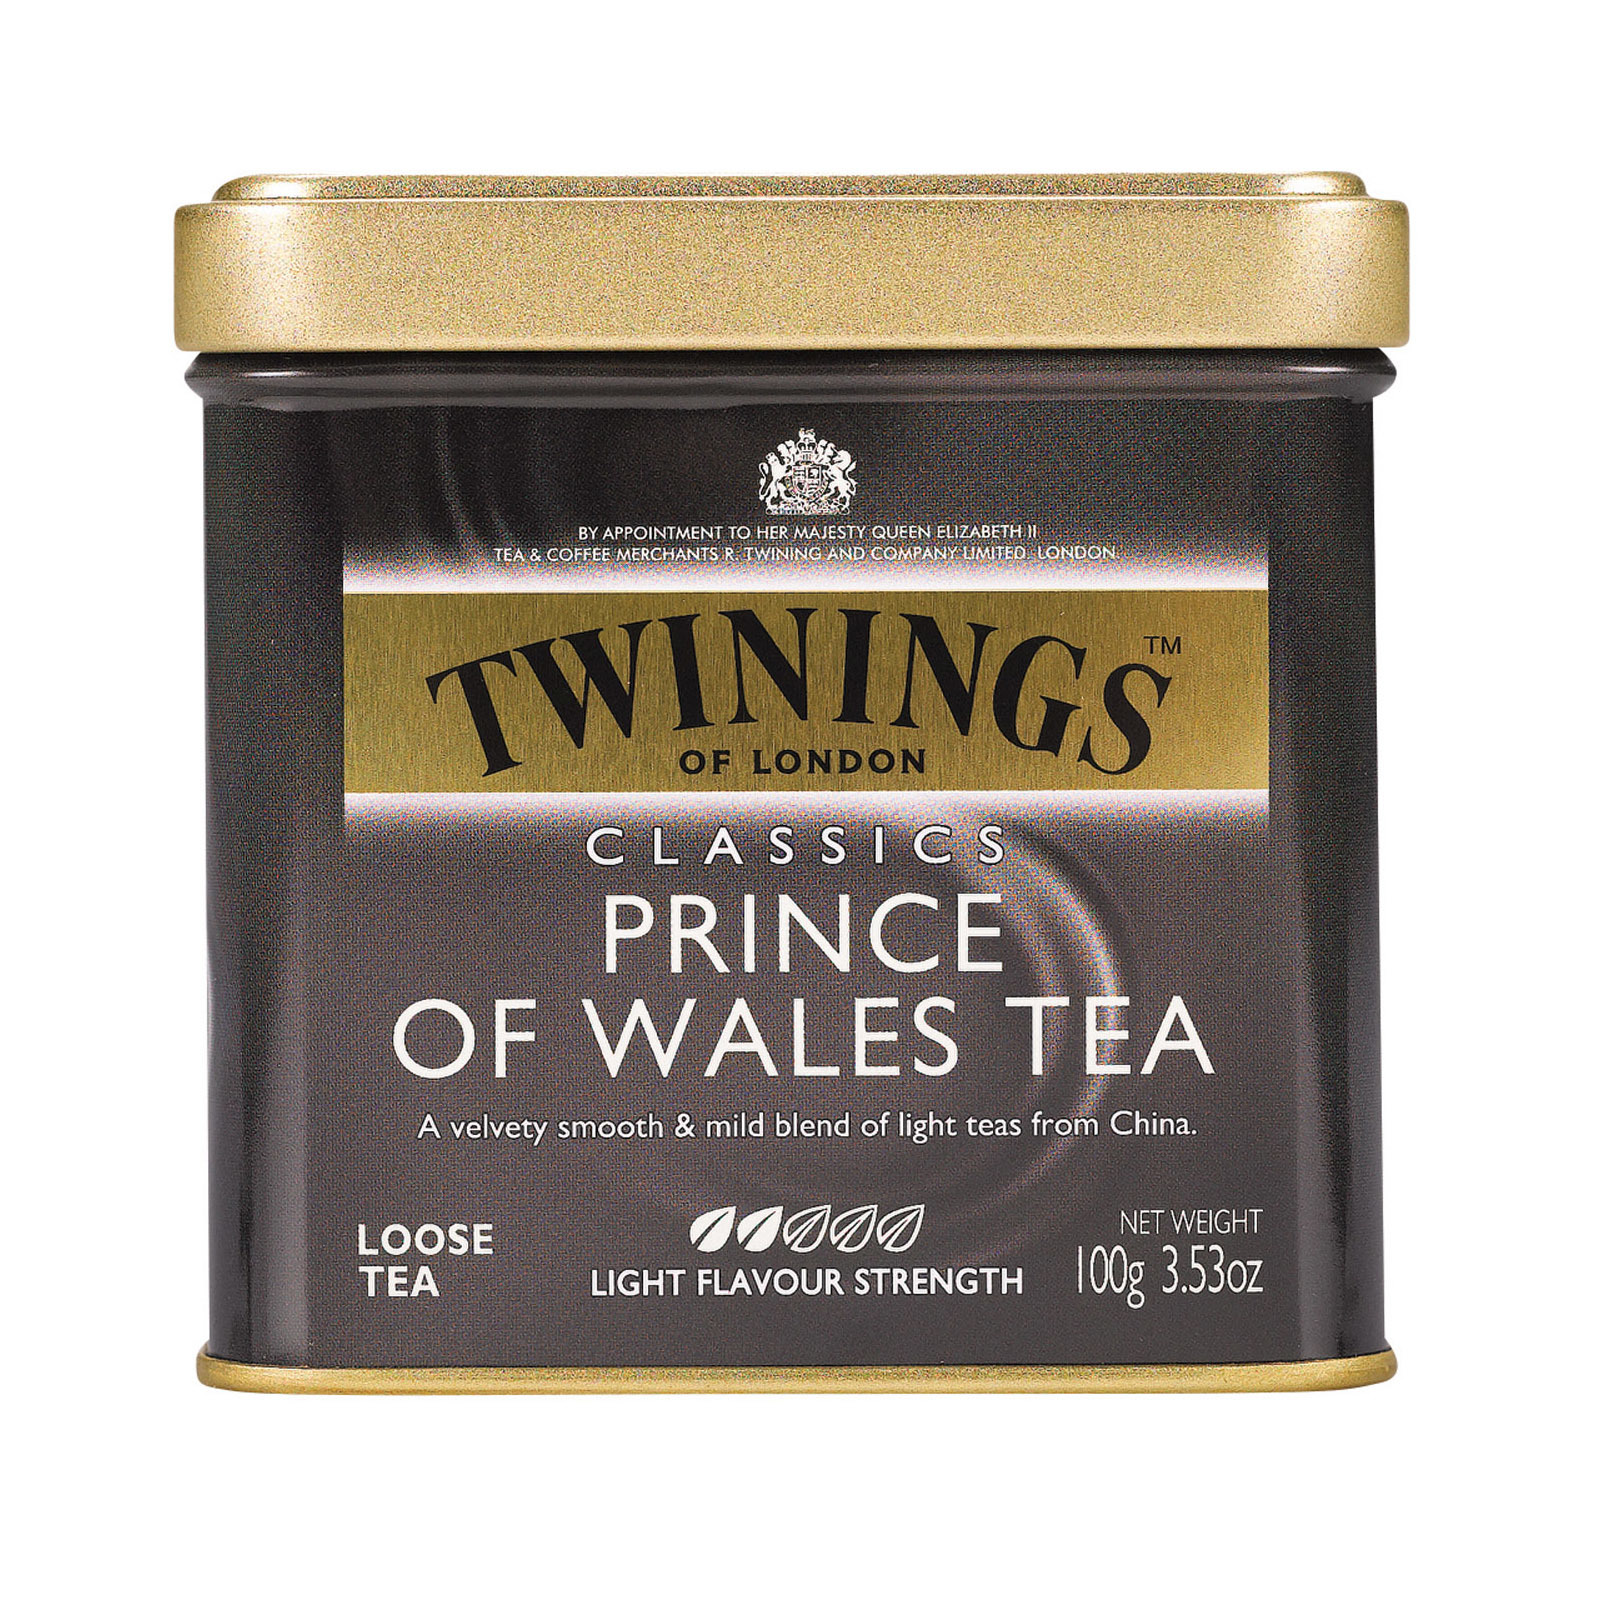 Twinings Tea Tea - Price Wales - Case of 6 - 3.53 oz